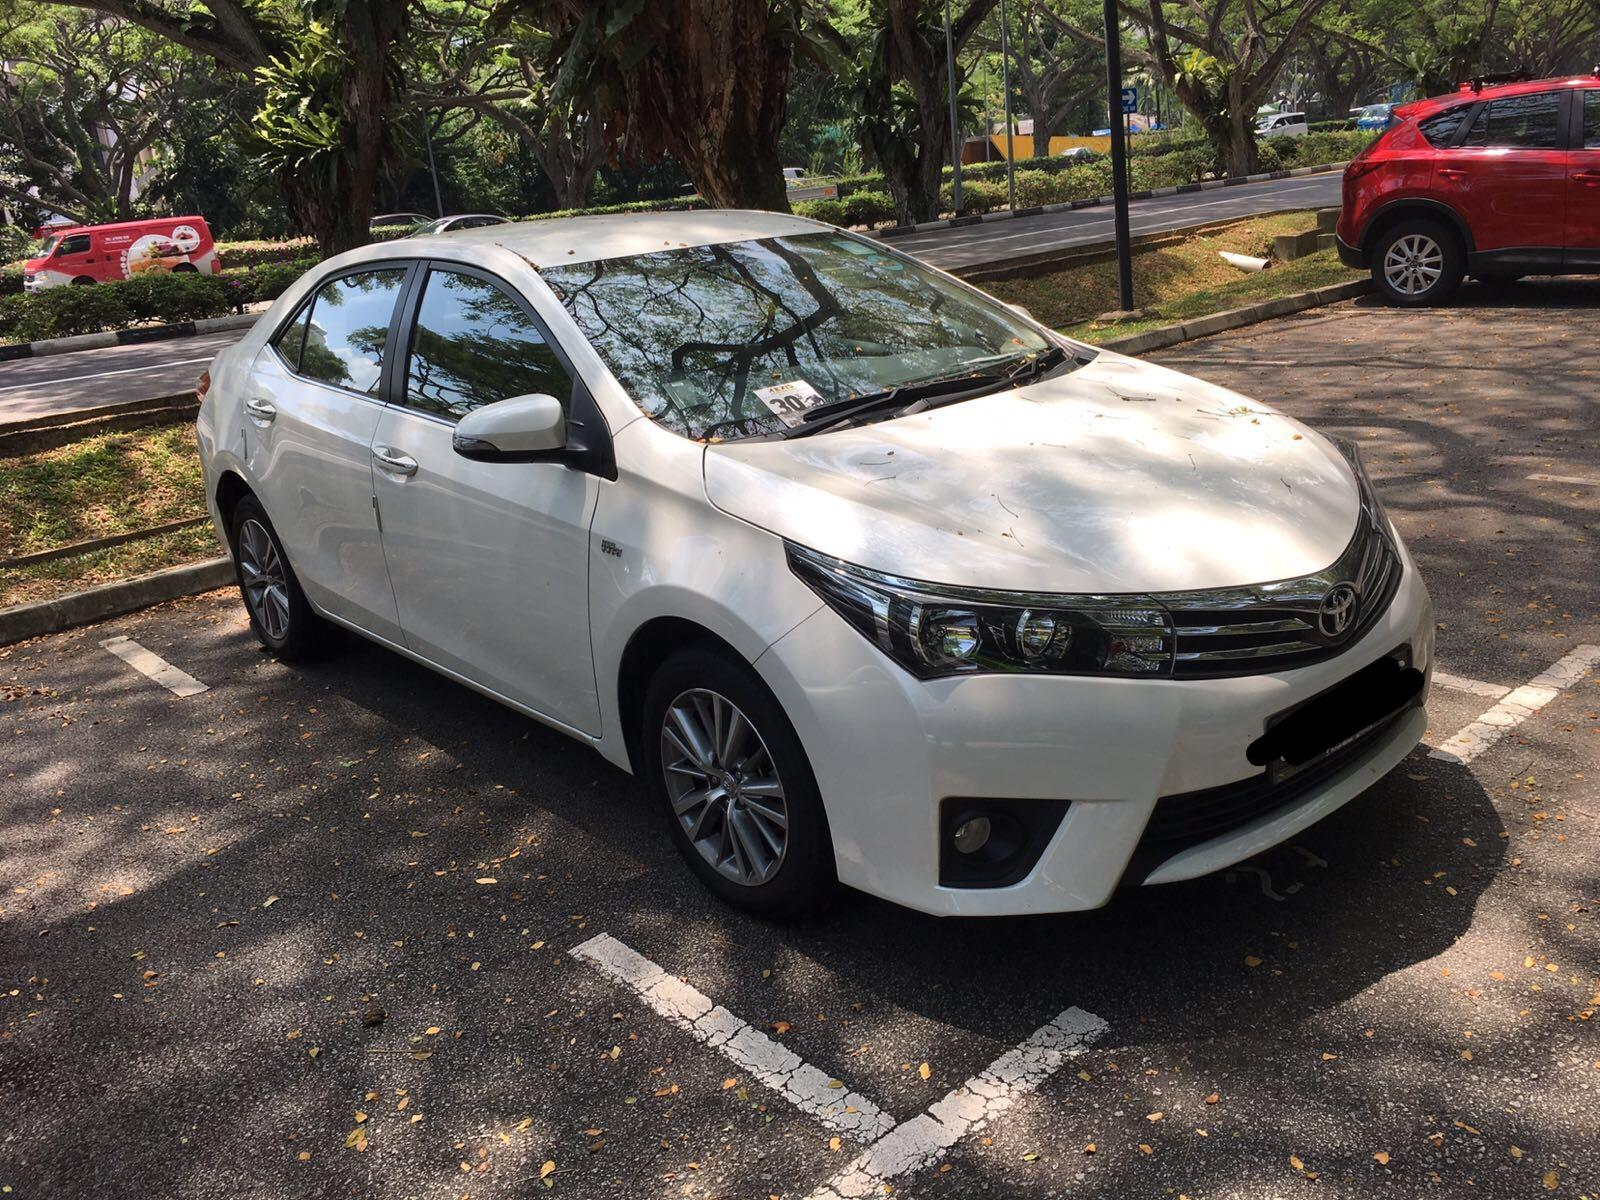 LELONG NEW TOYOTA ALTIS CHEAP CAR RENTAL BUSINESS AS USUAL